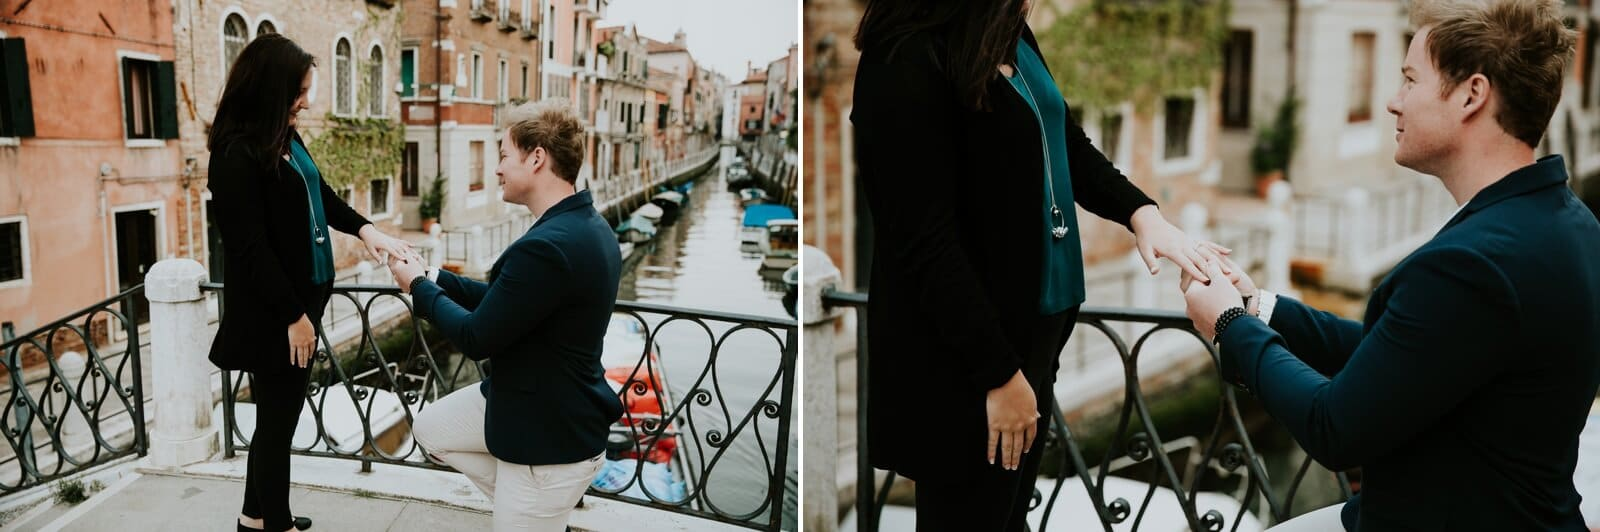 Proposal Engagement Italy-Venice Proposal Photographer